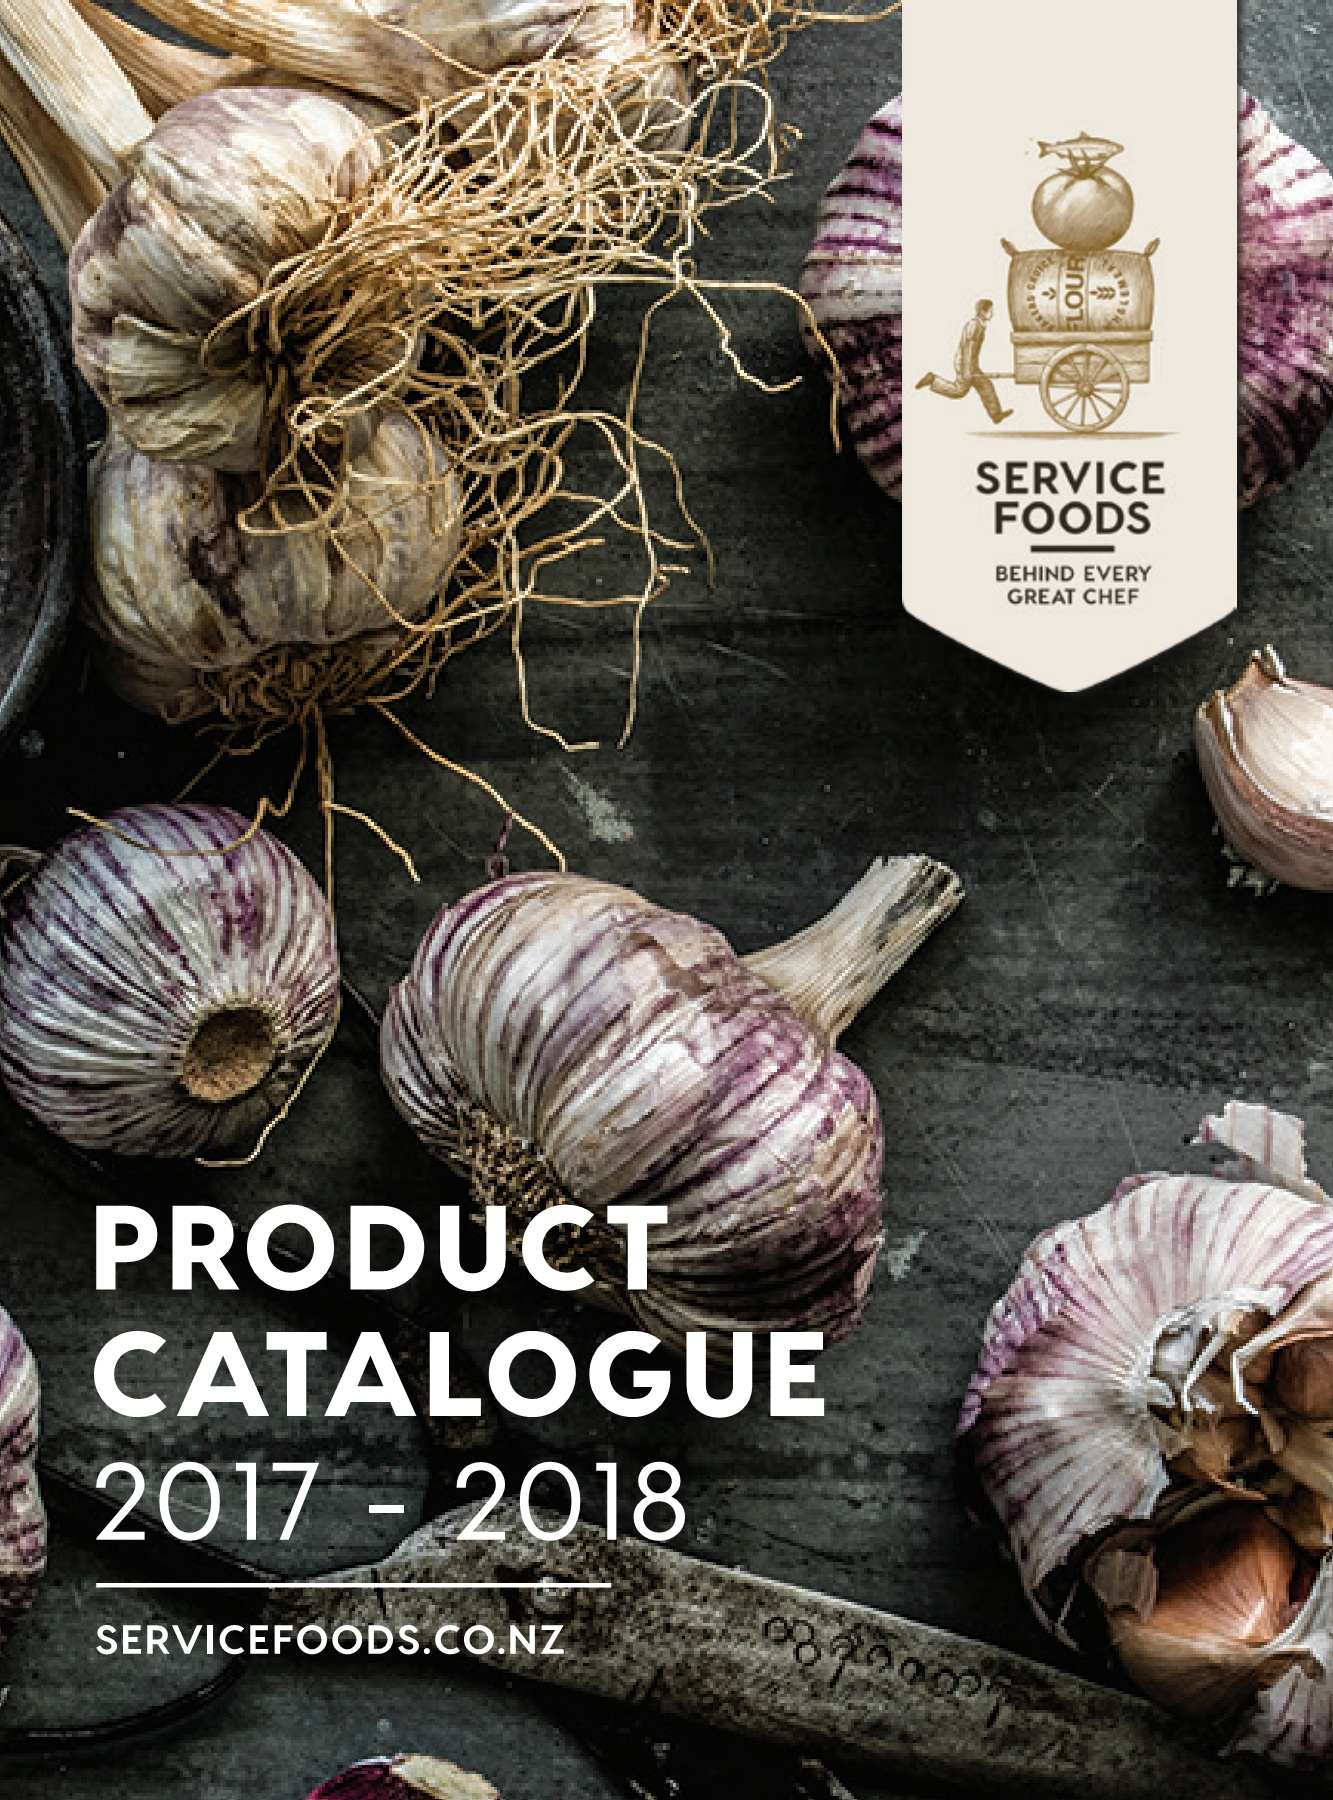 Sf Product Catalogue 2017 Website Duel1 Pages 51 100 Text Silver Queen Montes 50g